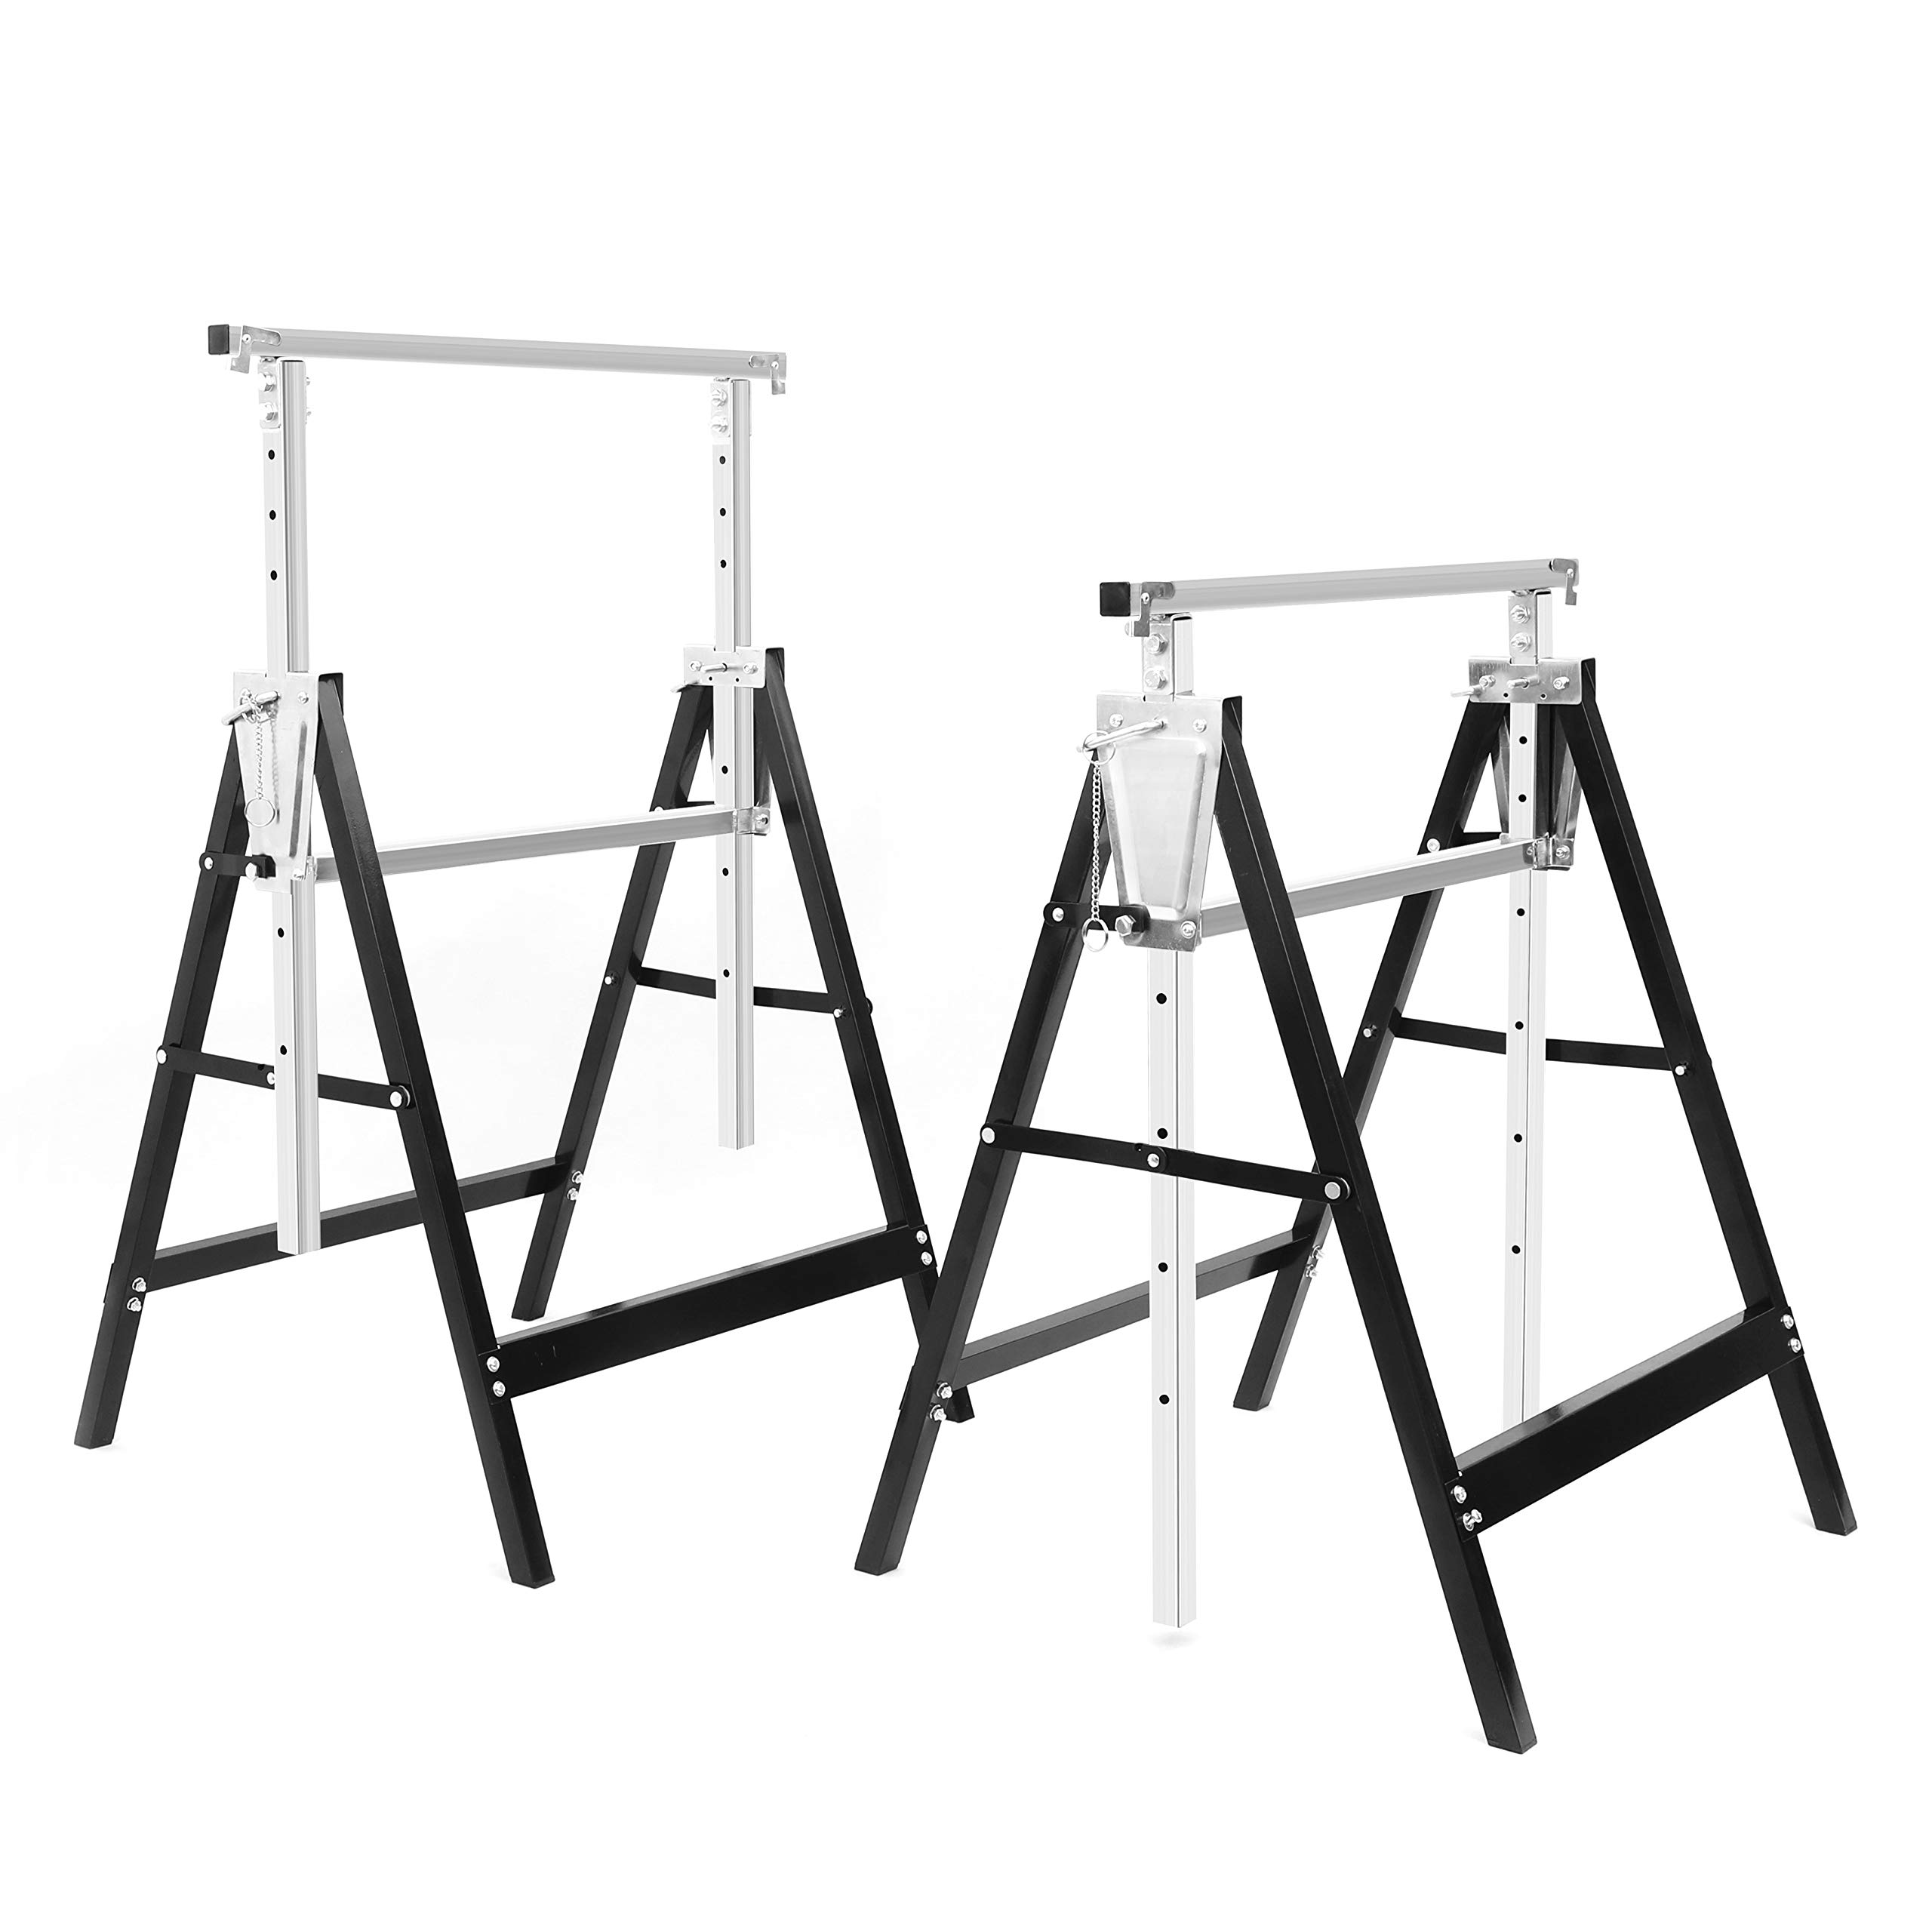 2 Pack Adjustable Builder Trestle Folding Portable Saw Horse Stand-up Desk Converter, 440 LBS Weight Capacity Each